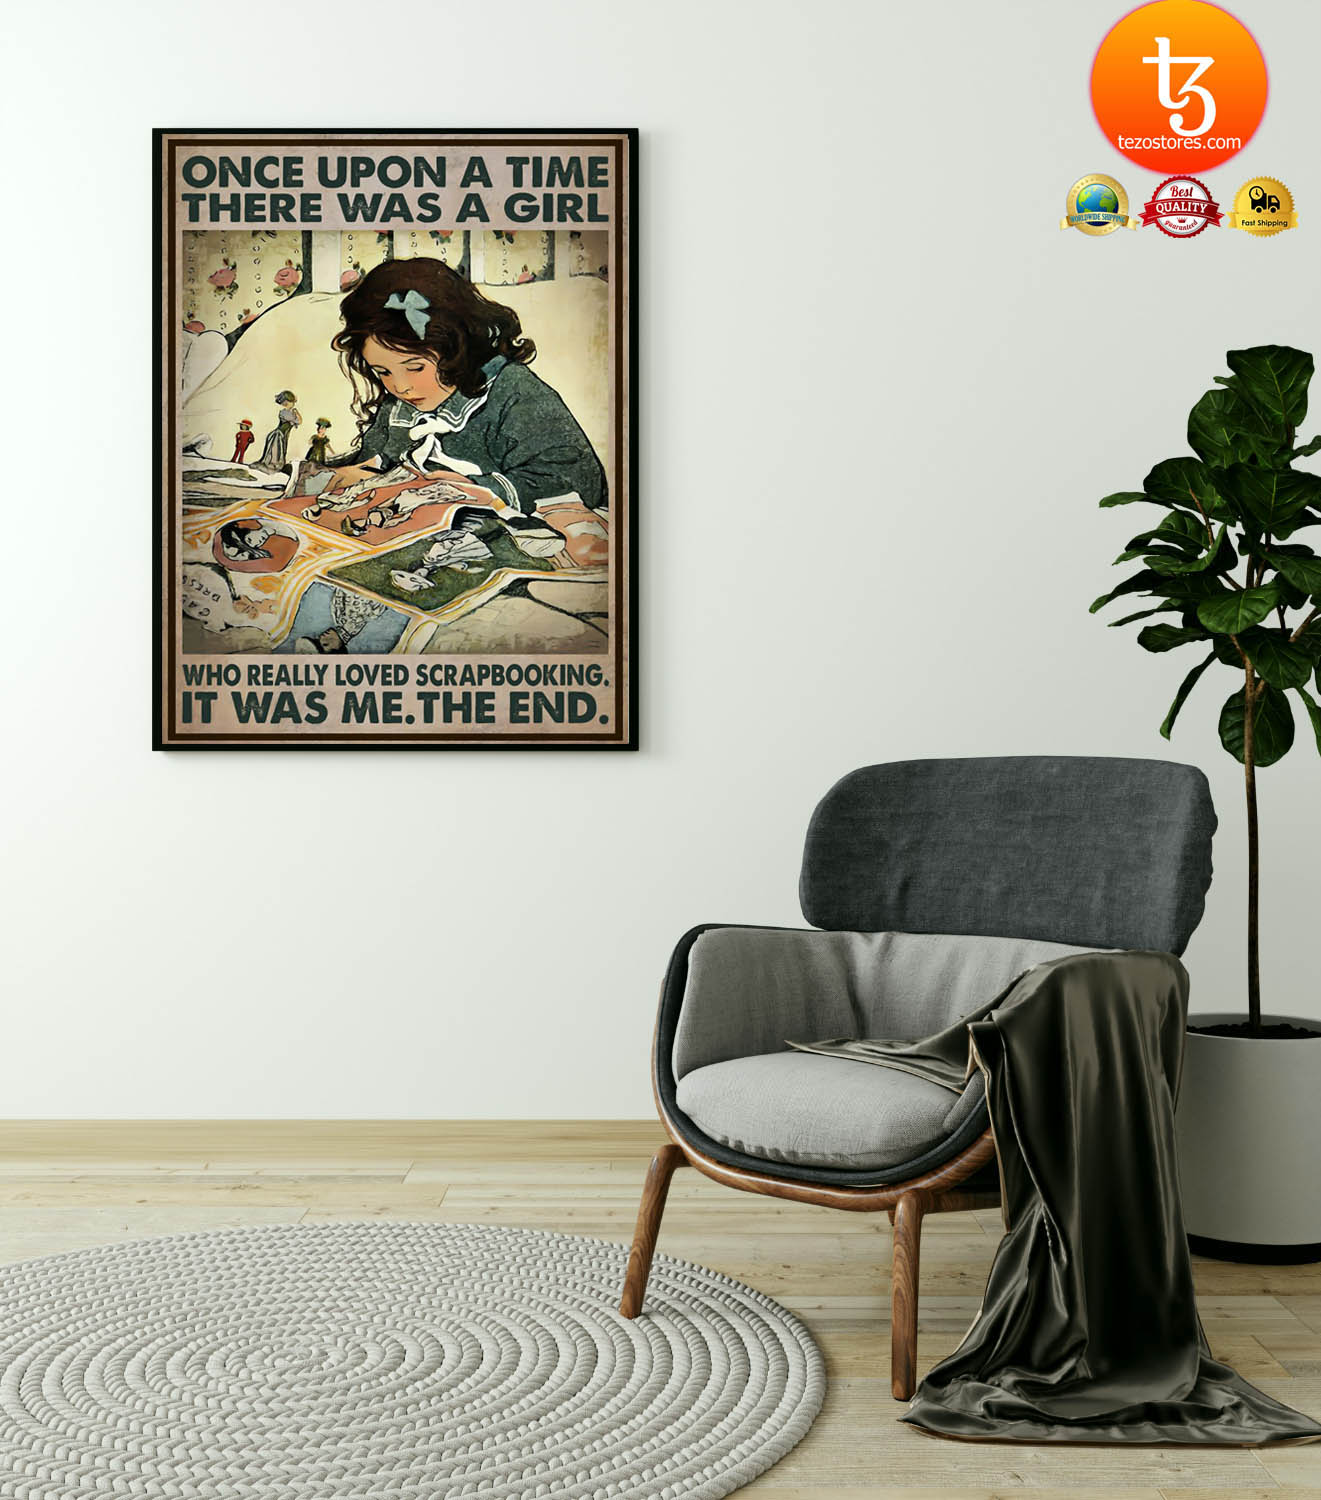 Once upon a time there was a girl who really loved scrapbooking poster 21